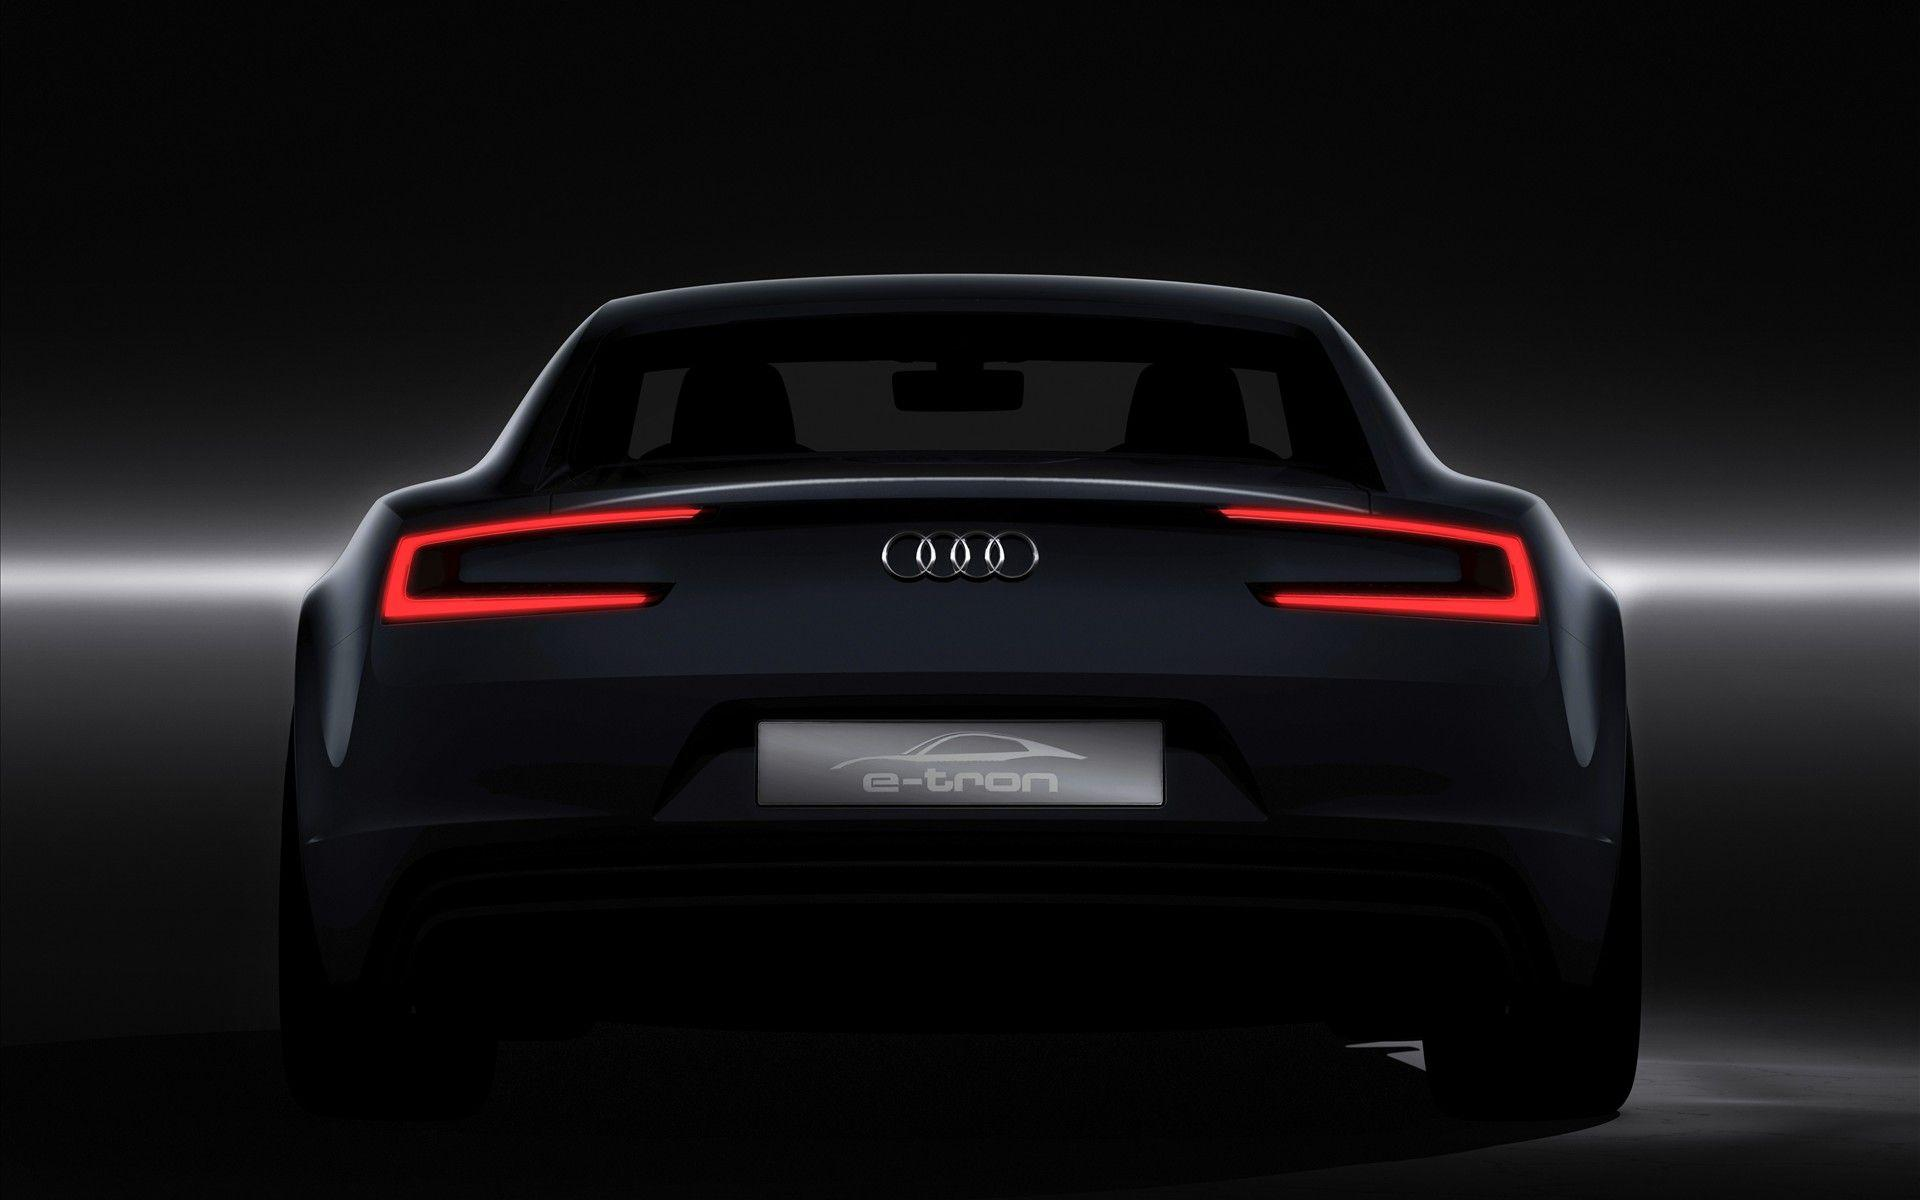 Audi e tron 10 Wallpapers | HD Wallpapers | ID #6688